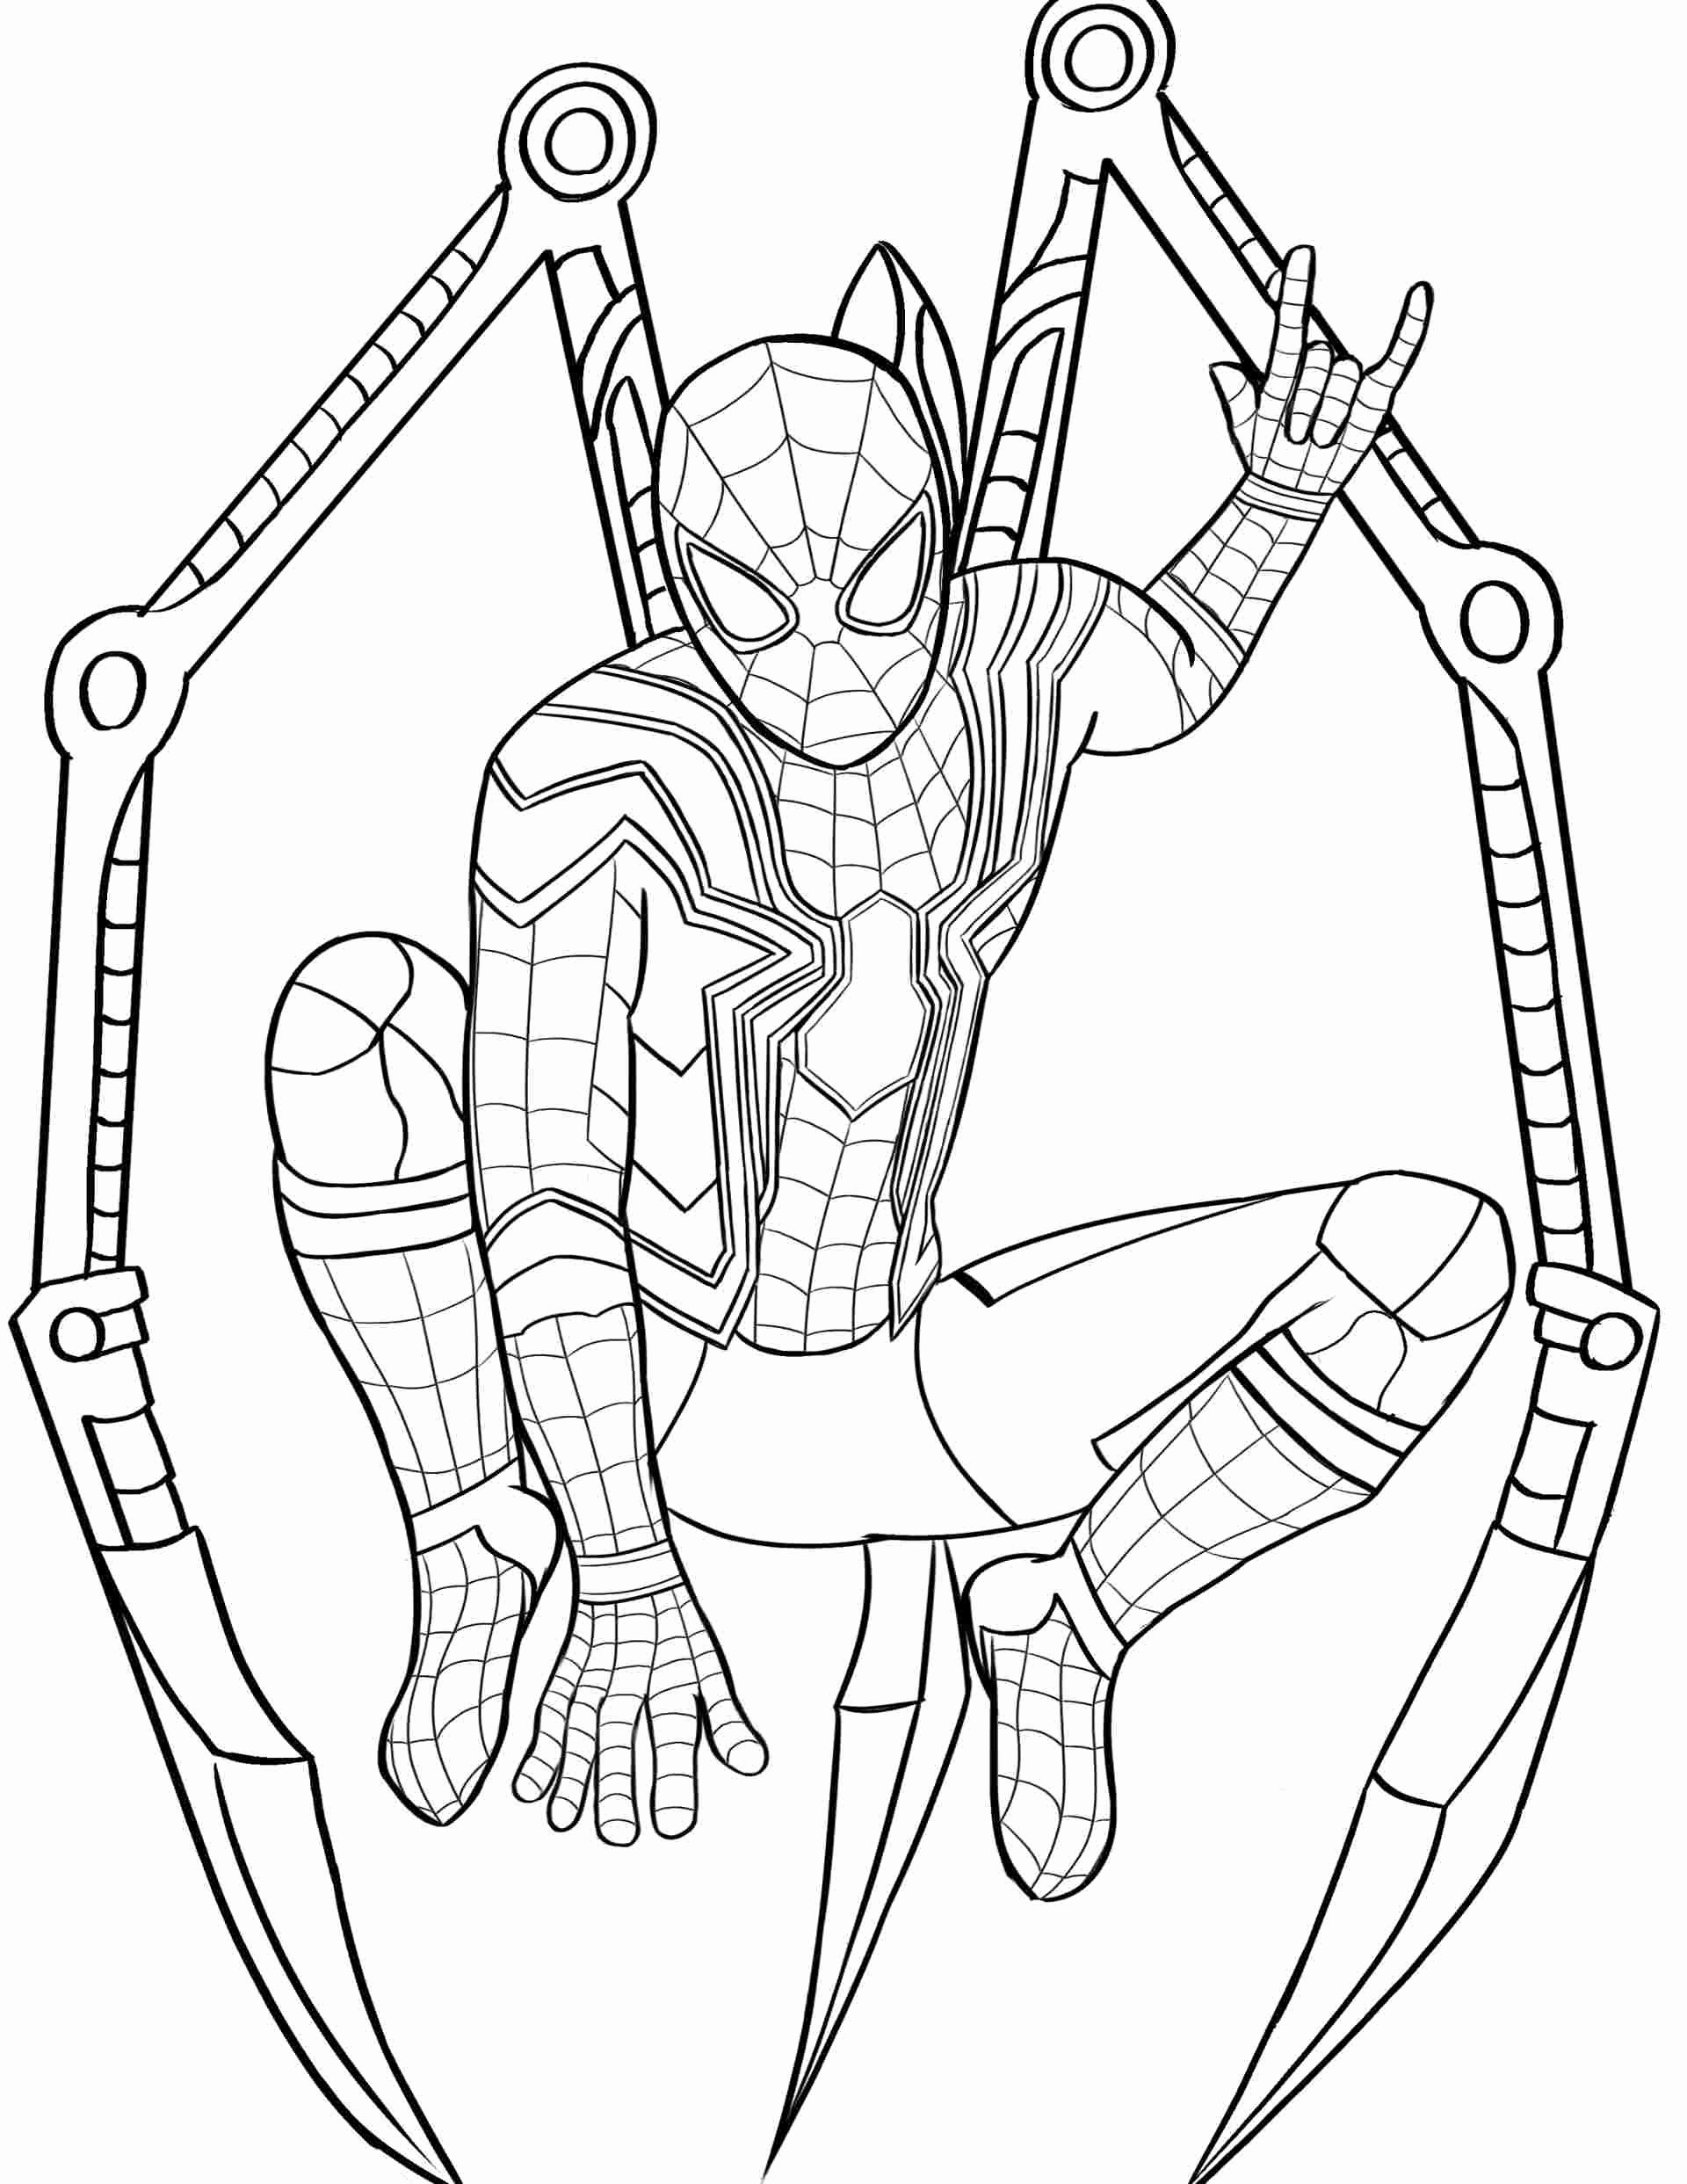 Downloadable Free Printable Coloring Sheet Spiderman Coloring Pages